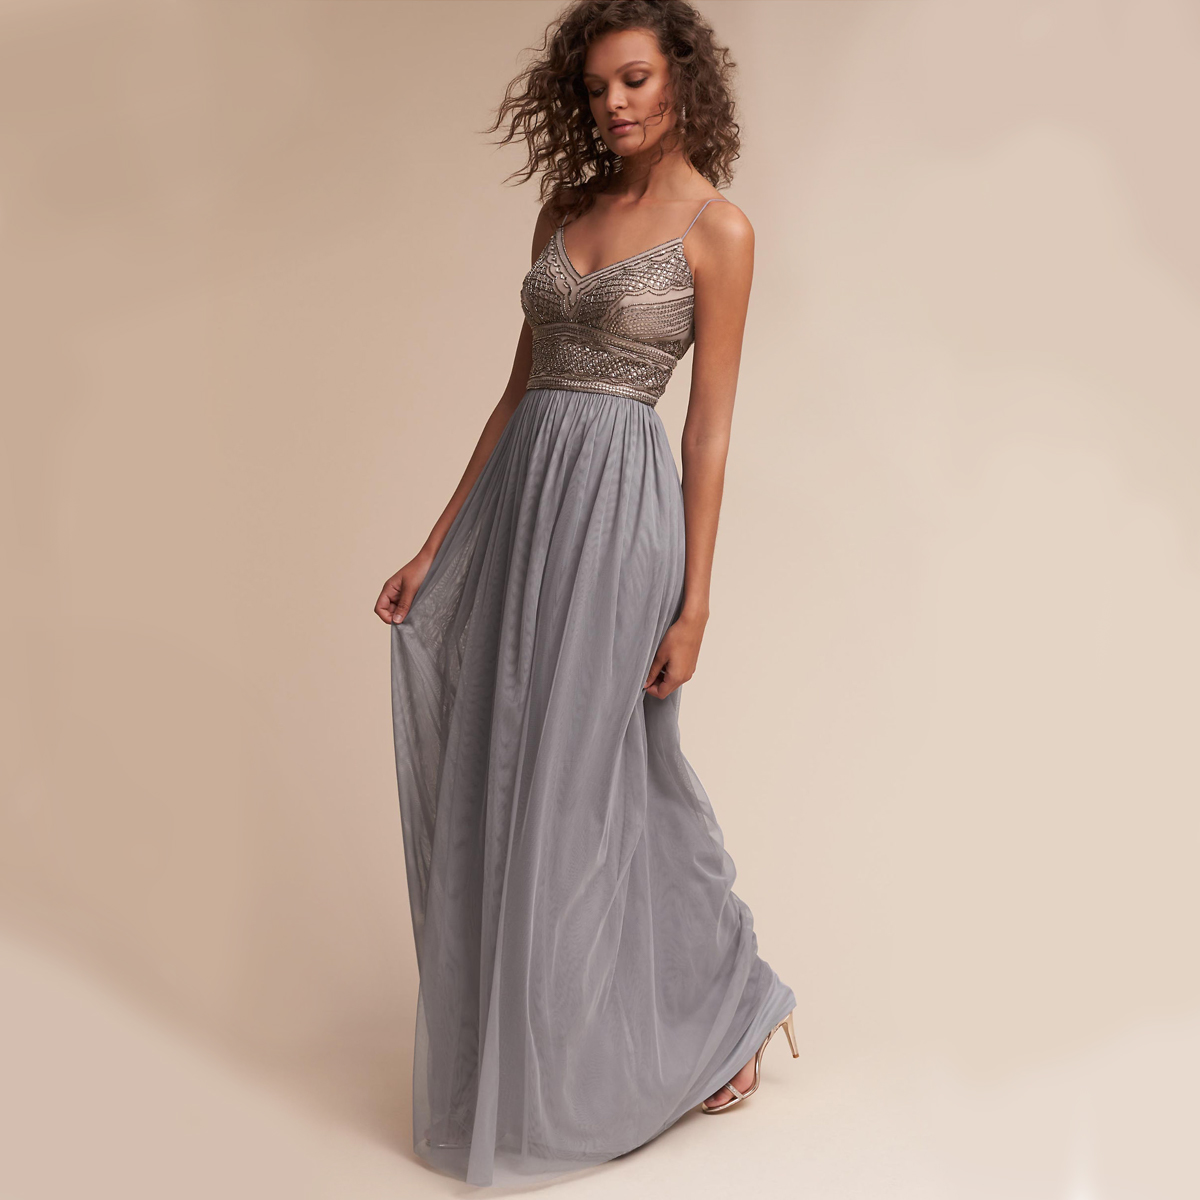 Something Blue BHLDN Dress